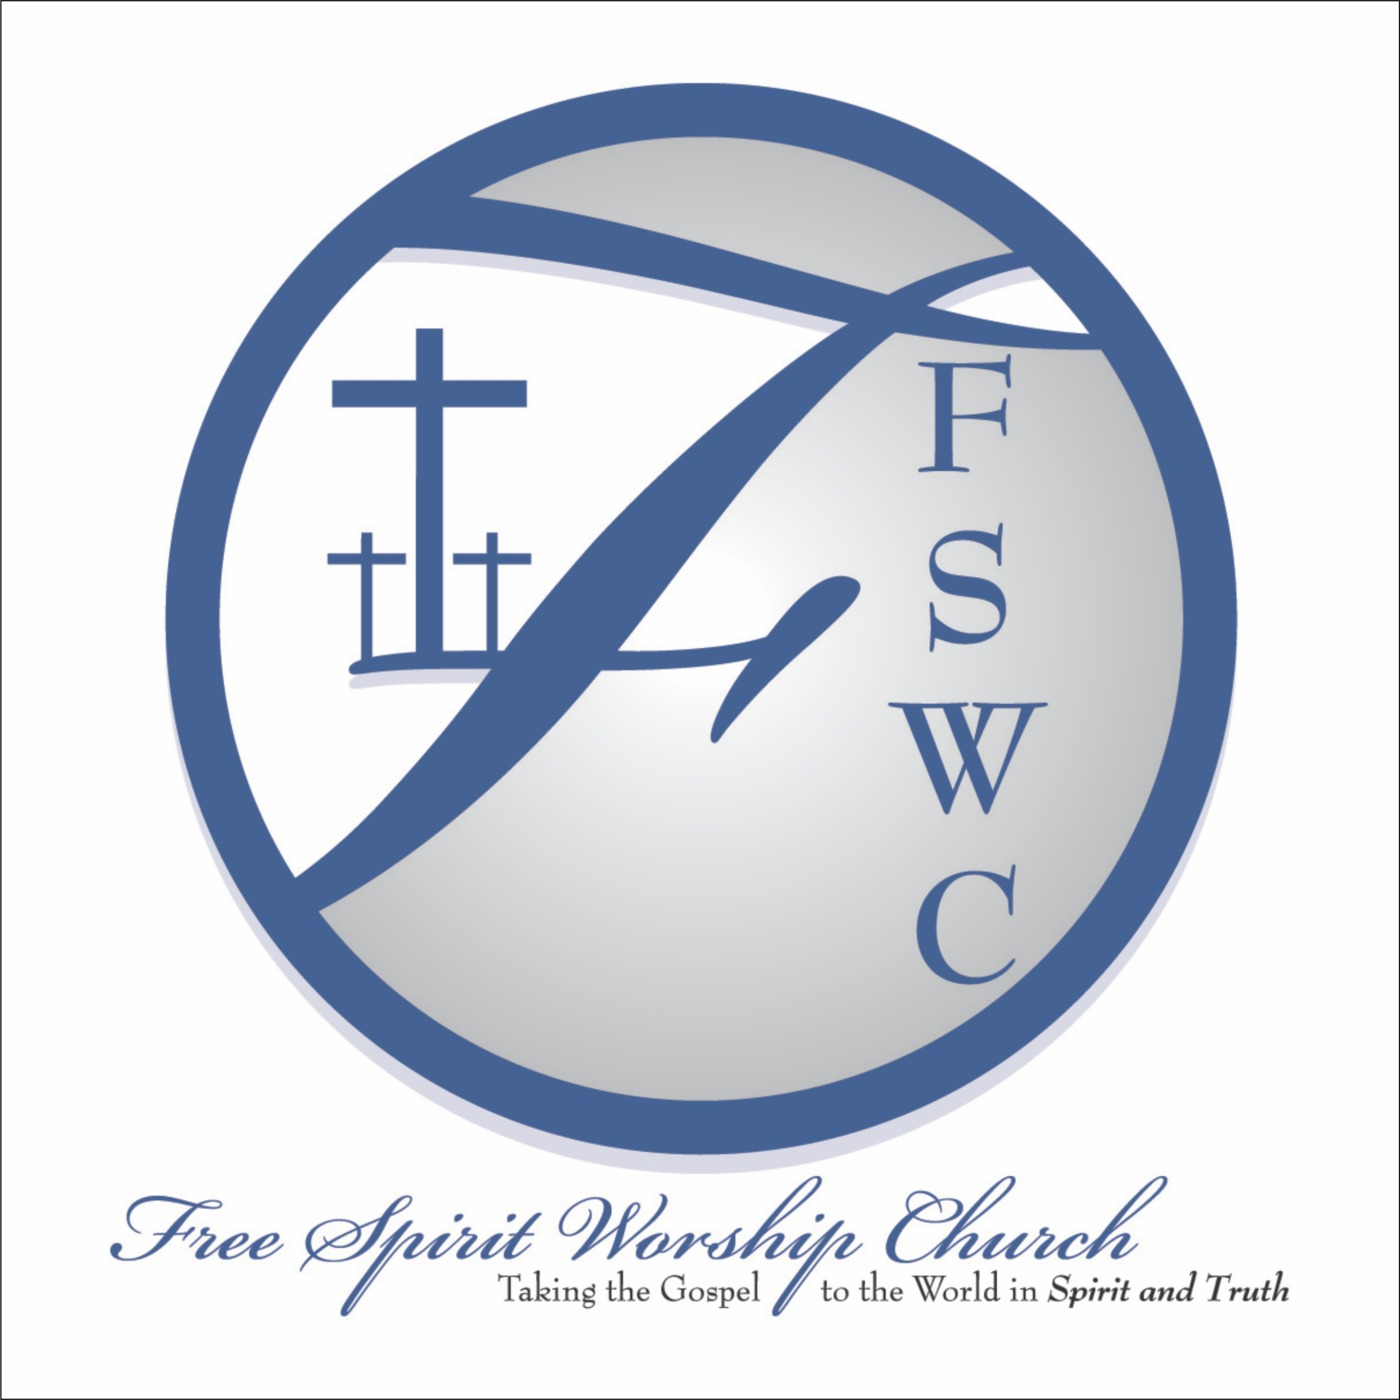 Free Spirit Worship Church